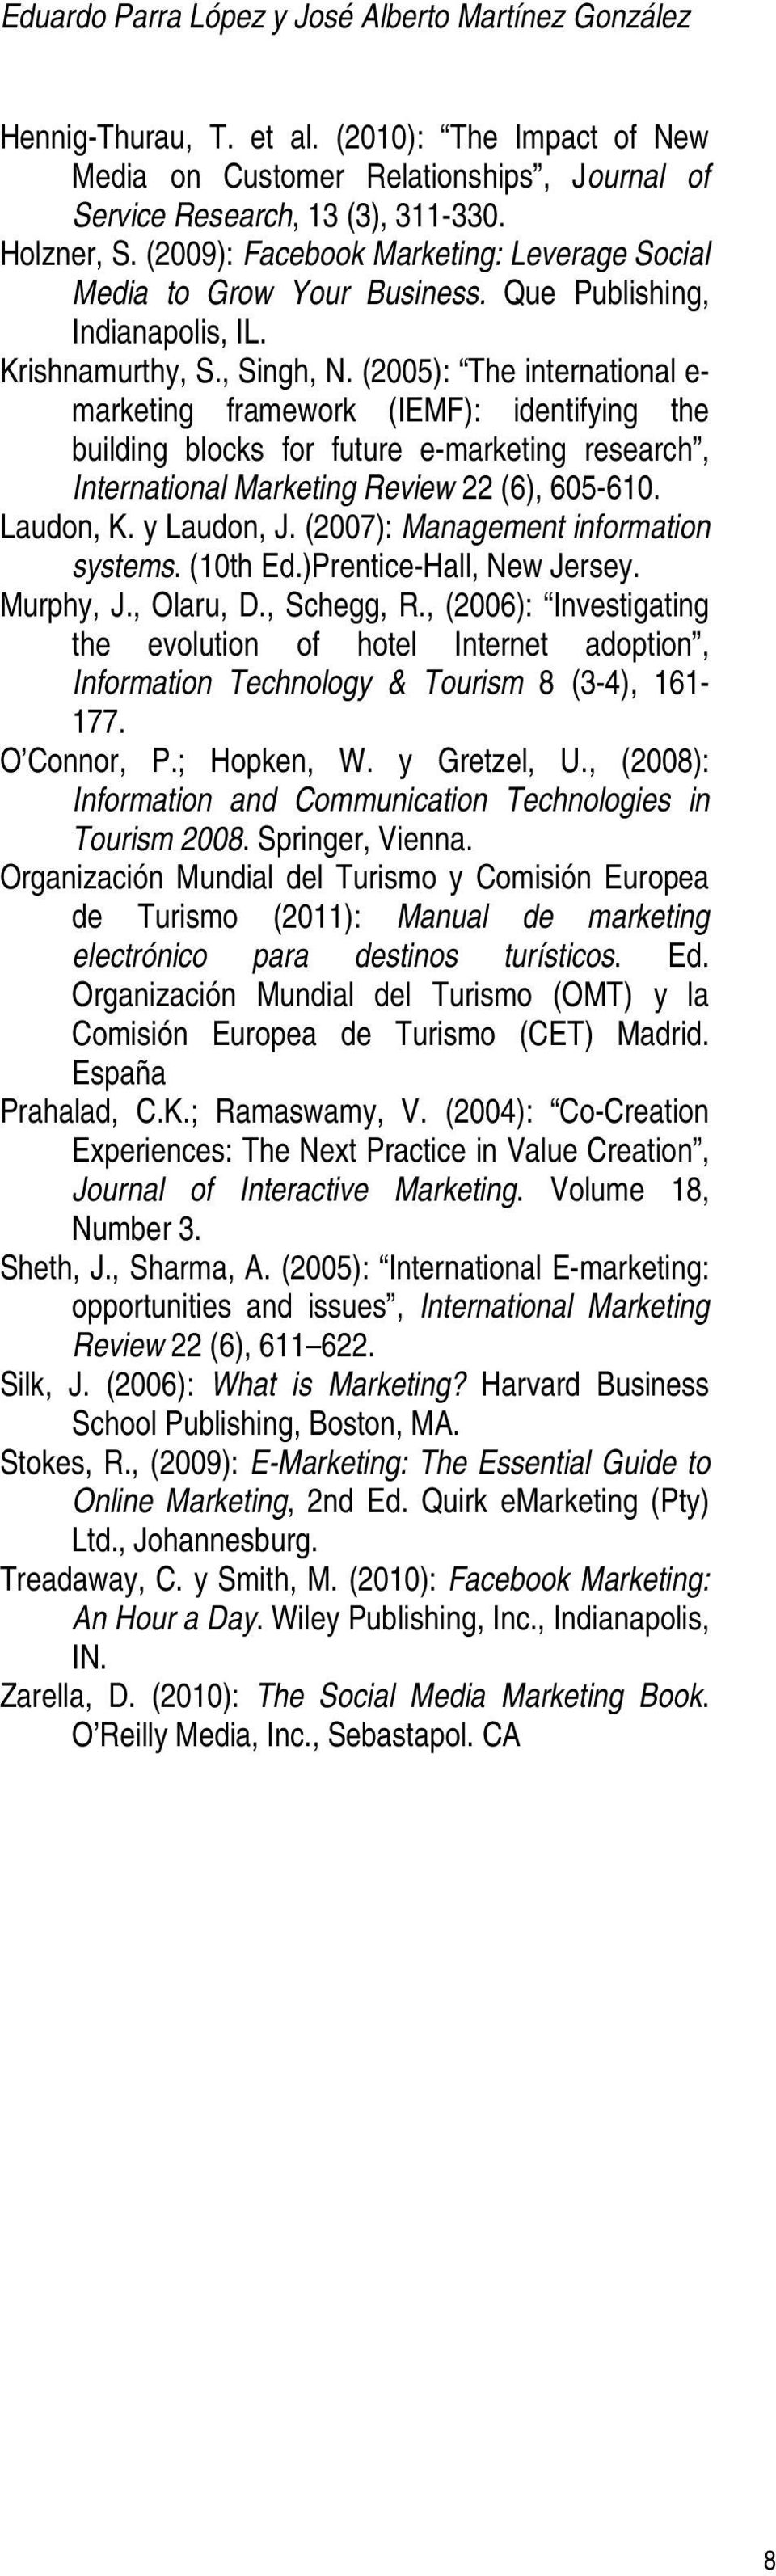 (2005): The international e- marketing framework (IEMF): identifying the building blocks for future e-marketing research, International Marketing Review 22 (6), 605-610. Laudon, K. y Laudon, J.